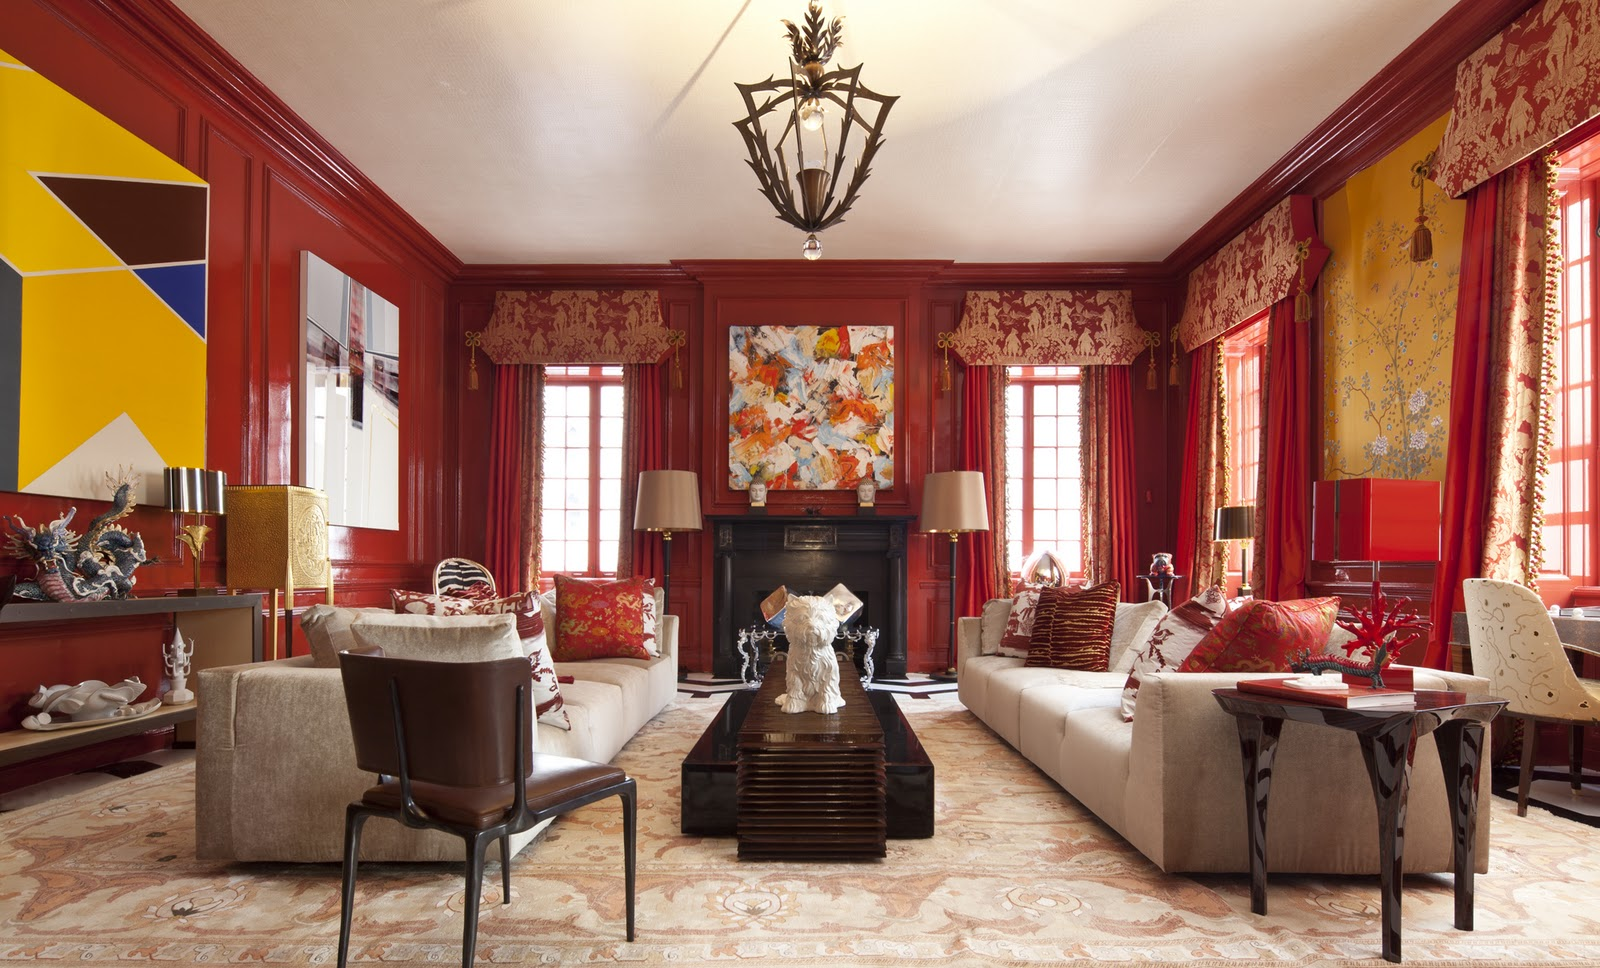 Art of silk blog feng shui how wind and water influence - How many years is interior design ...